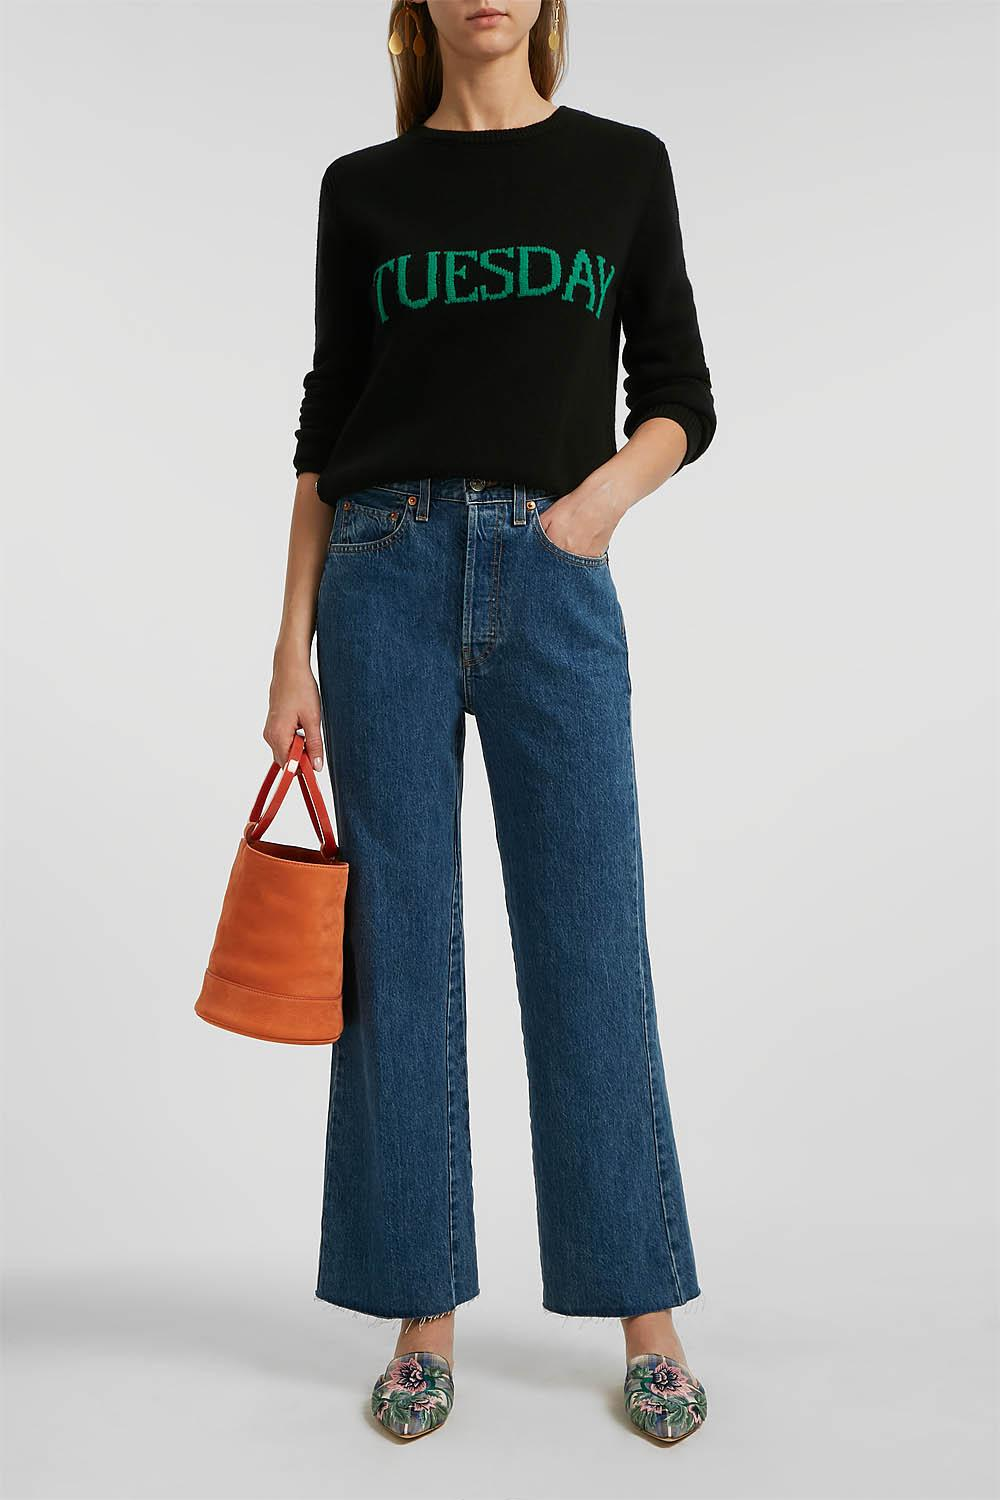 Tuesday Intarsia Wool And Cashmere-Blend Jumper